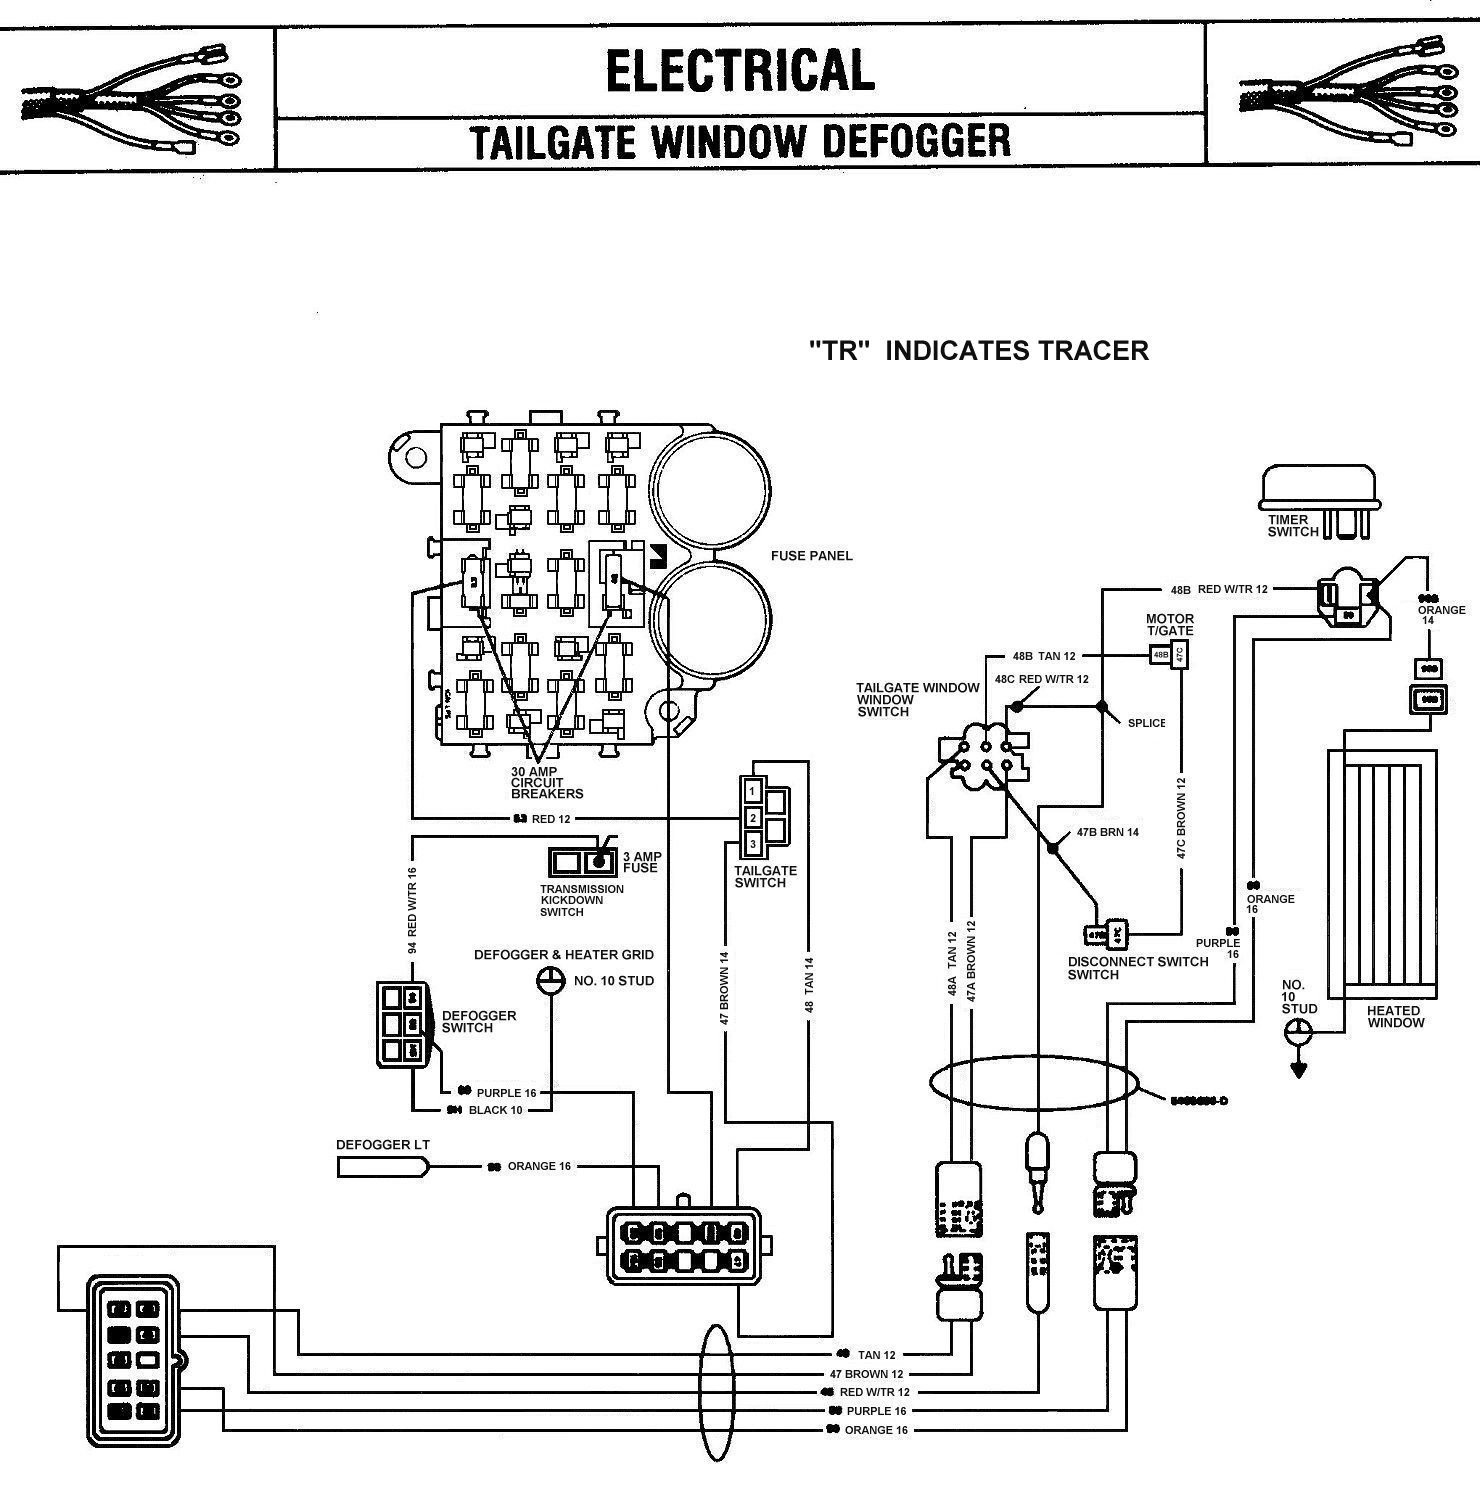 1988 Jeep Cherokee Wiring Diagram Pdf List Of Schematic Circuit 2 5 88 Dodge Tom Oljeep Collins Fsj Page Rh Com